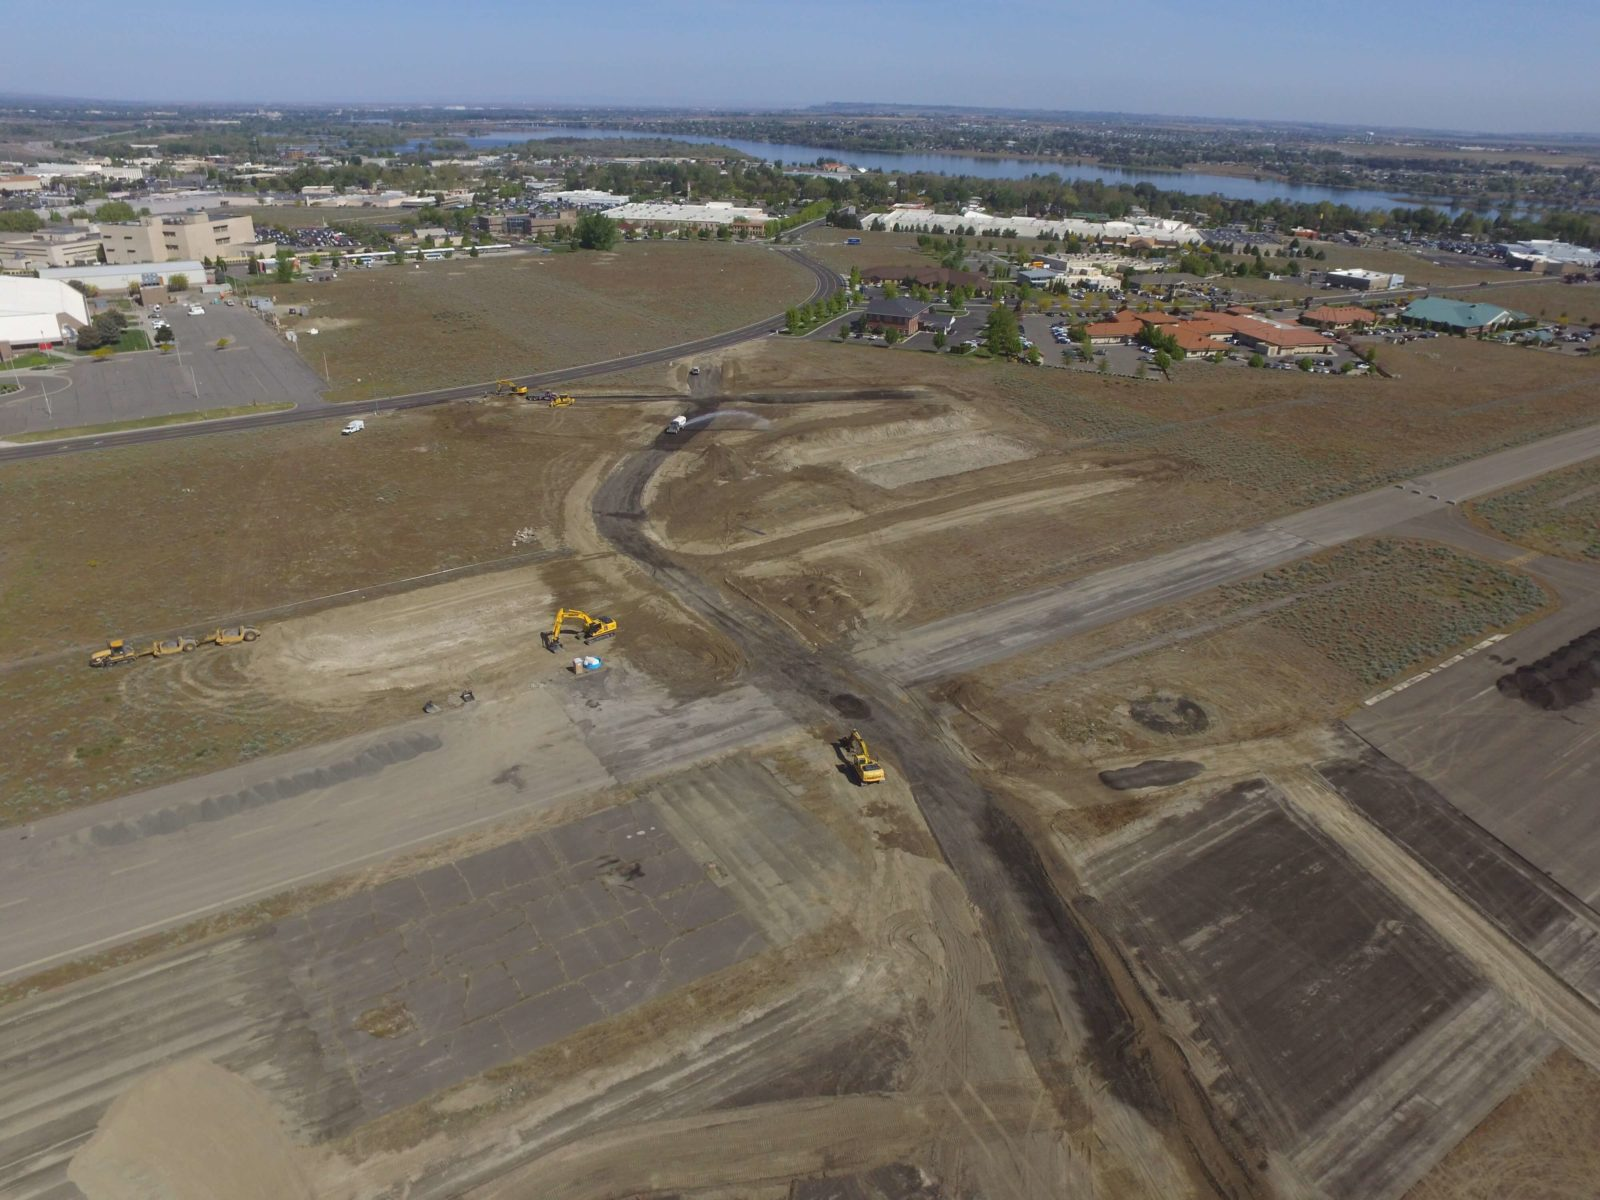 Aerial view of roads under construction at Vista Field.